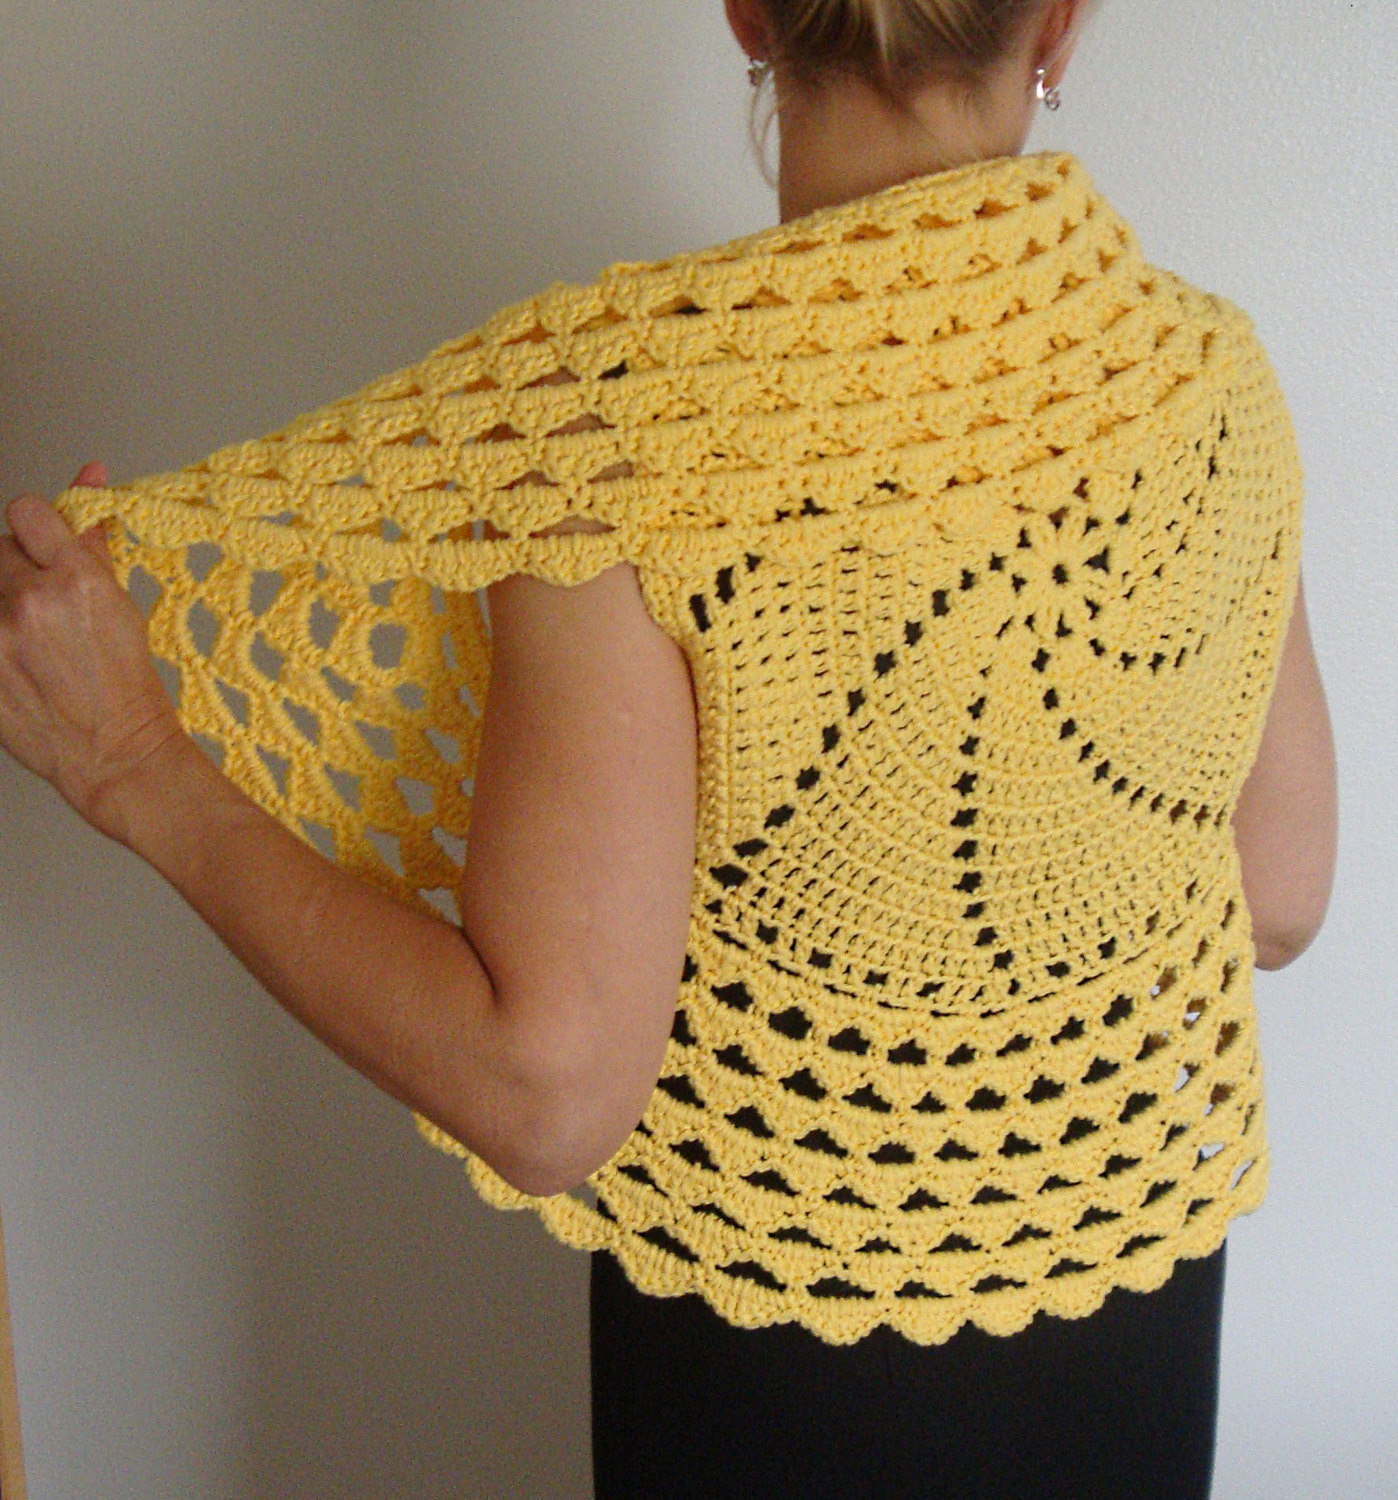 Crochet Boleros Patterns Best Of Crochet Pattern Circle Vest Shrug Pdf Digital Crochet Of Amazing 41 Ideas Crochet Boleros Patterns